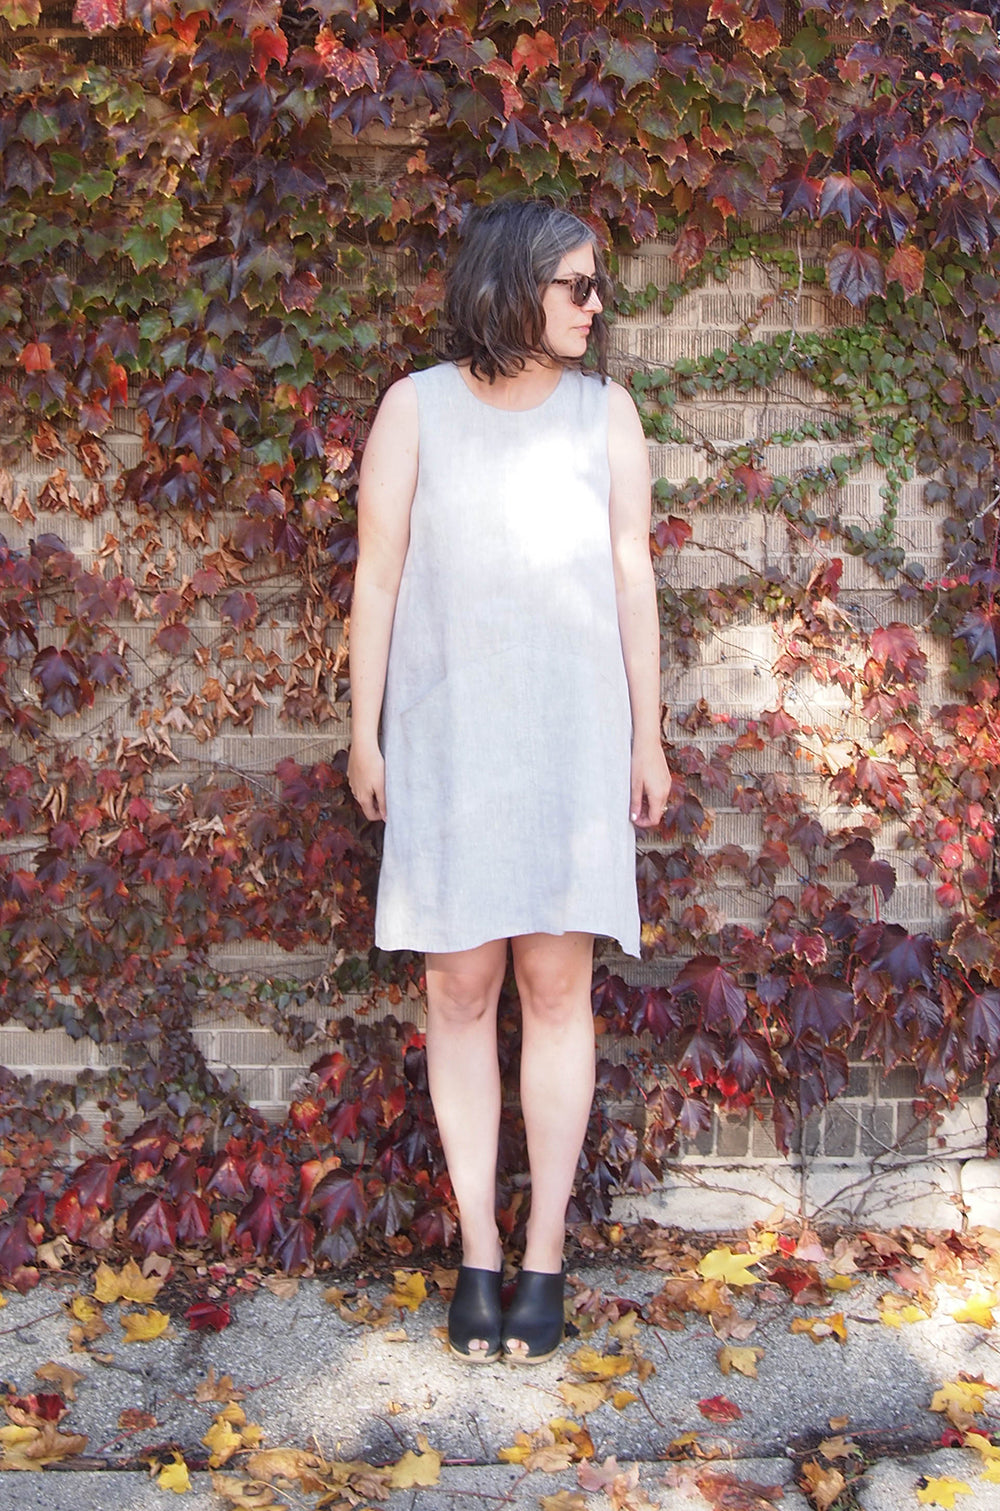 Introducing the Farrow Dress | Grainline Studio